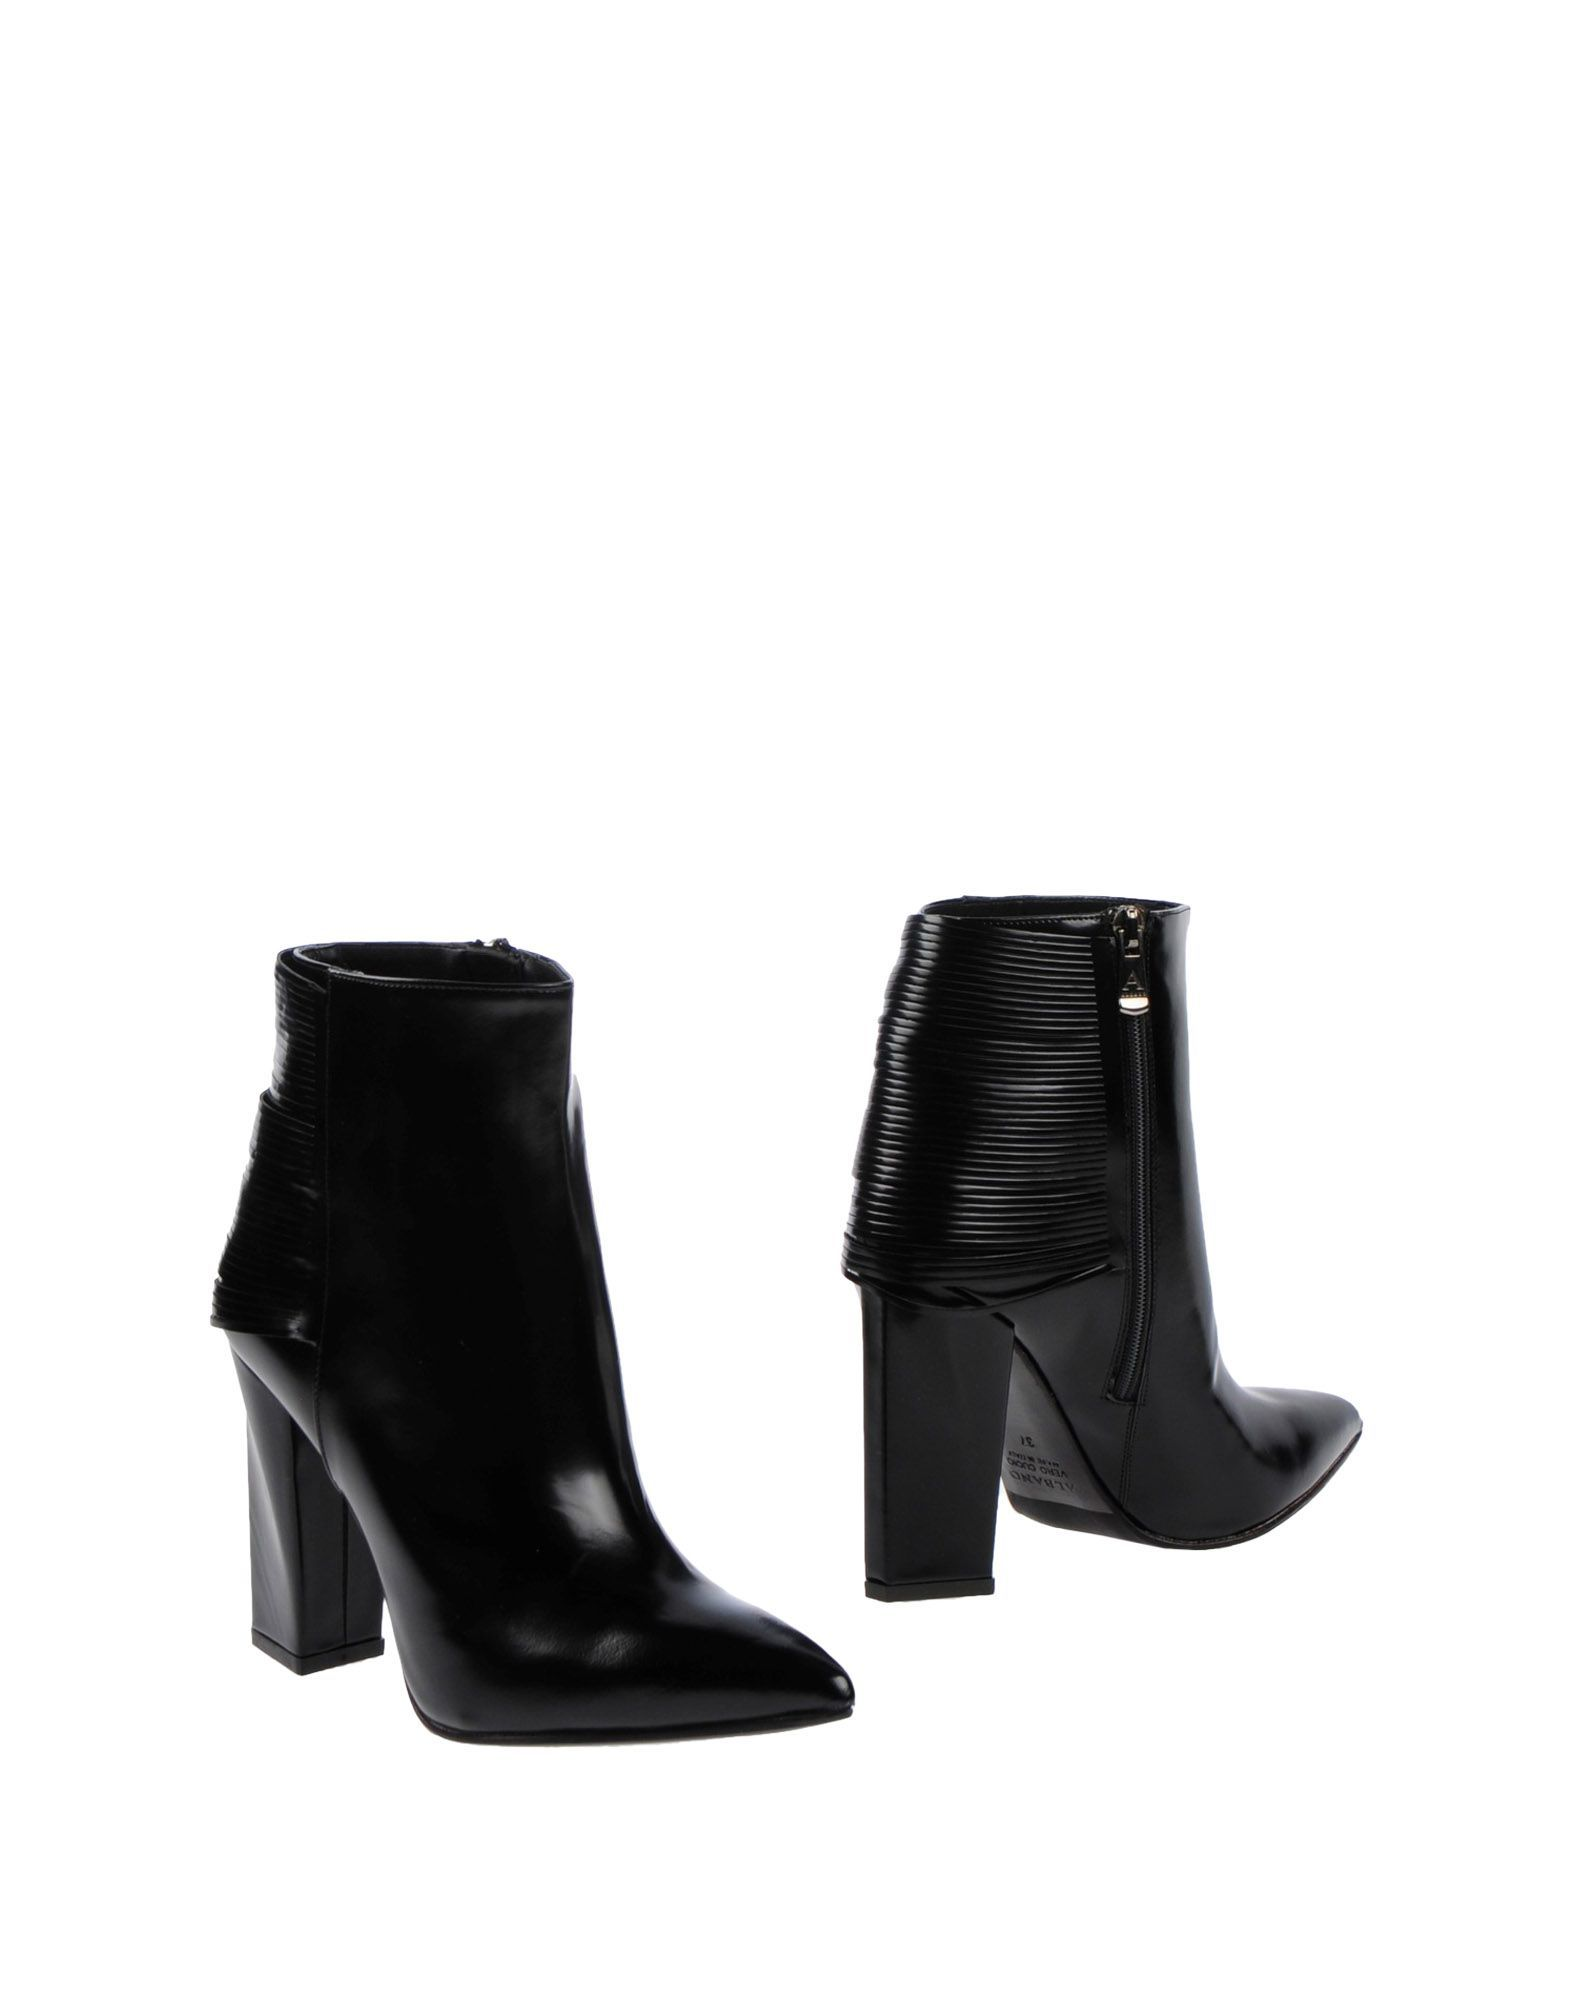 FOOTWEAR - Boots Albano Outlet Locations Online Footlocker Pictures Online Outlet Really lUkZgF1r